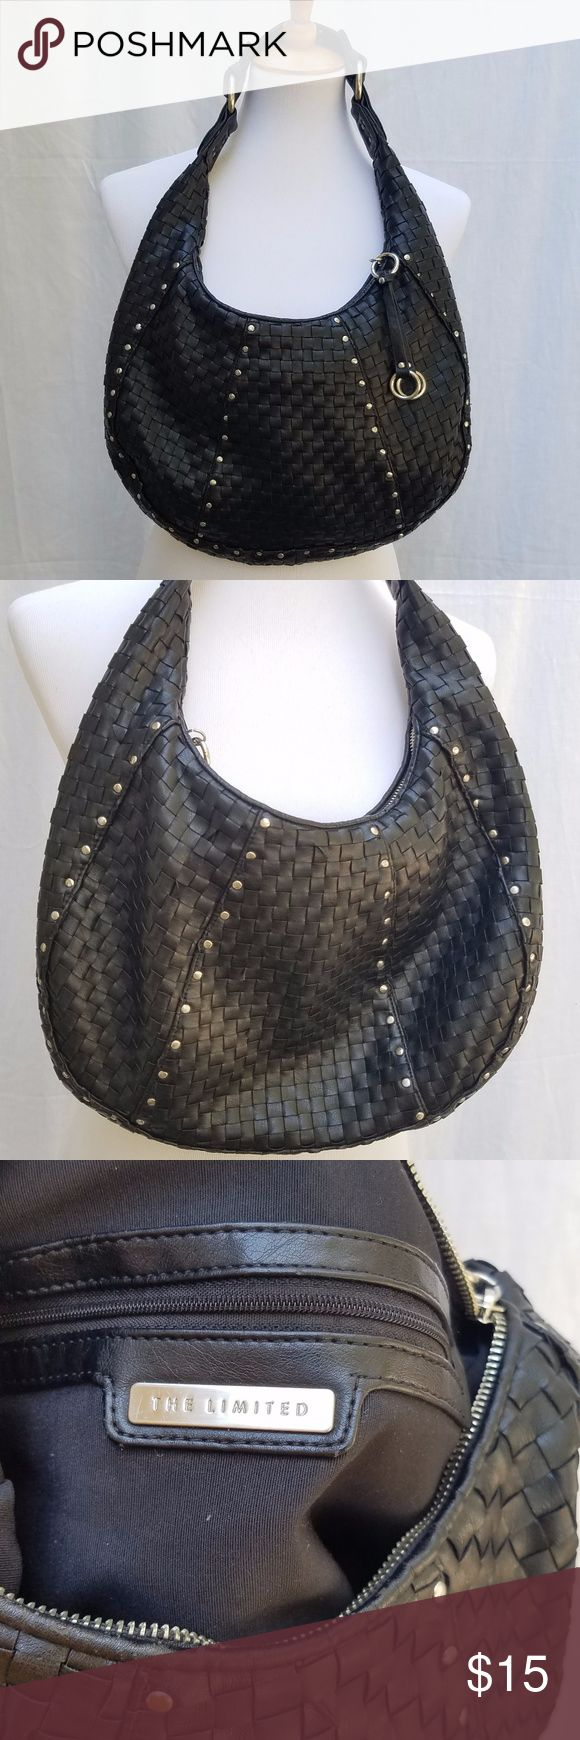 The Limited black Basket weave shoulder bag The Limited black Basket weave shoulder bag, faux leather, brushed silver hardware and studs, very soft feel, slouchy hobo look.  Beautiful bag in great condition, there is minimal wear on the handle as expected.  Bag has a single zipper at the top and a couple of pockets on the inside. The Limited Bags Shoulder Bags